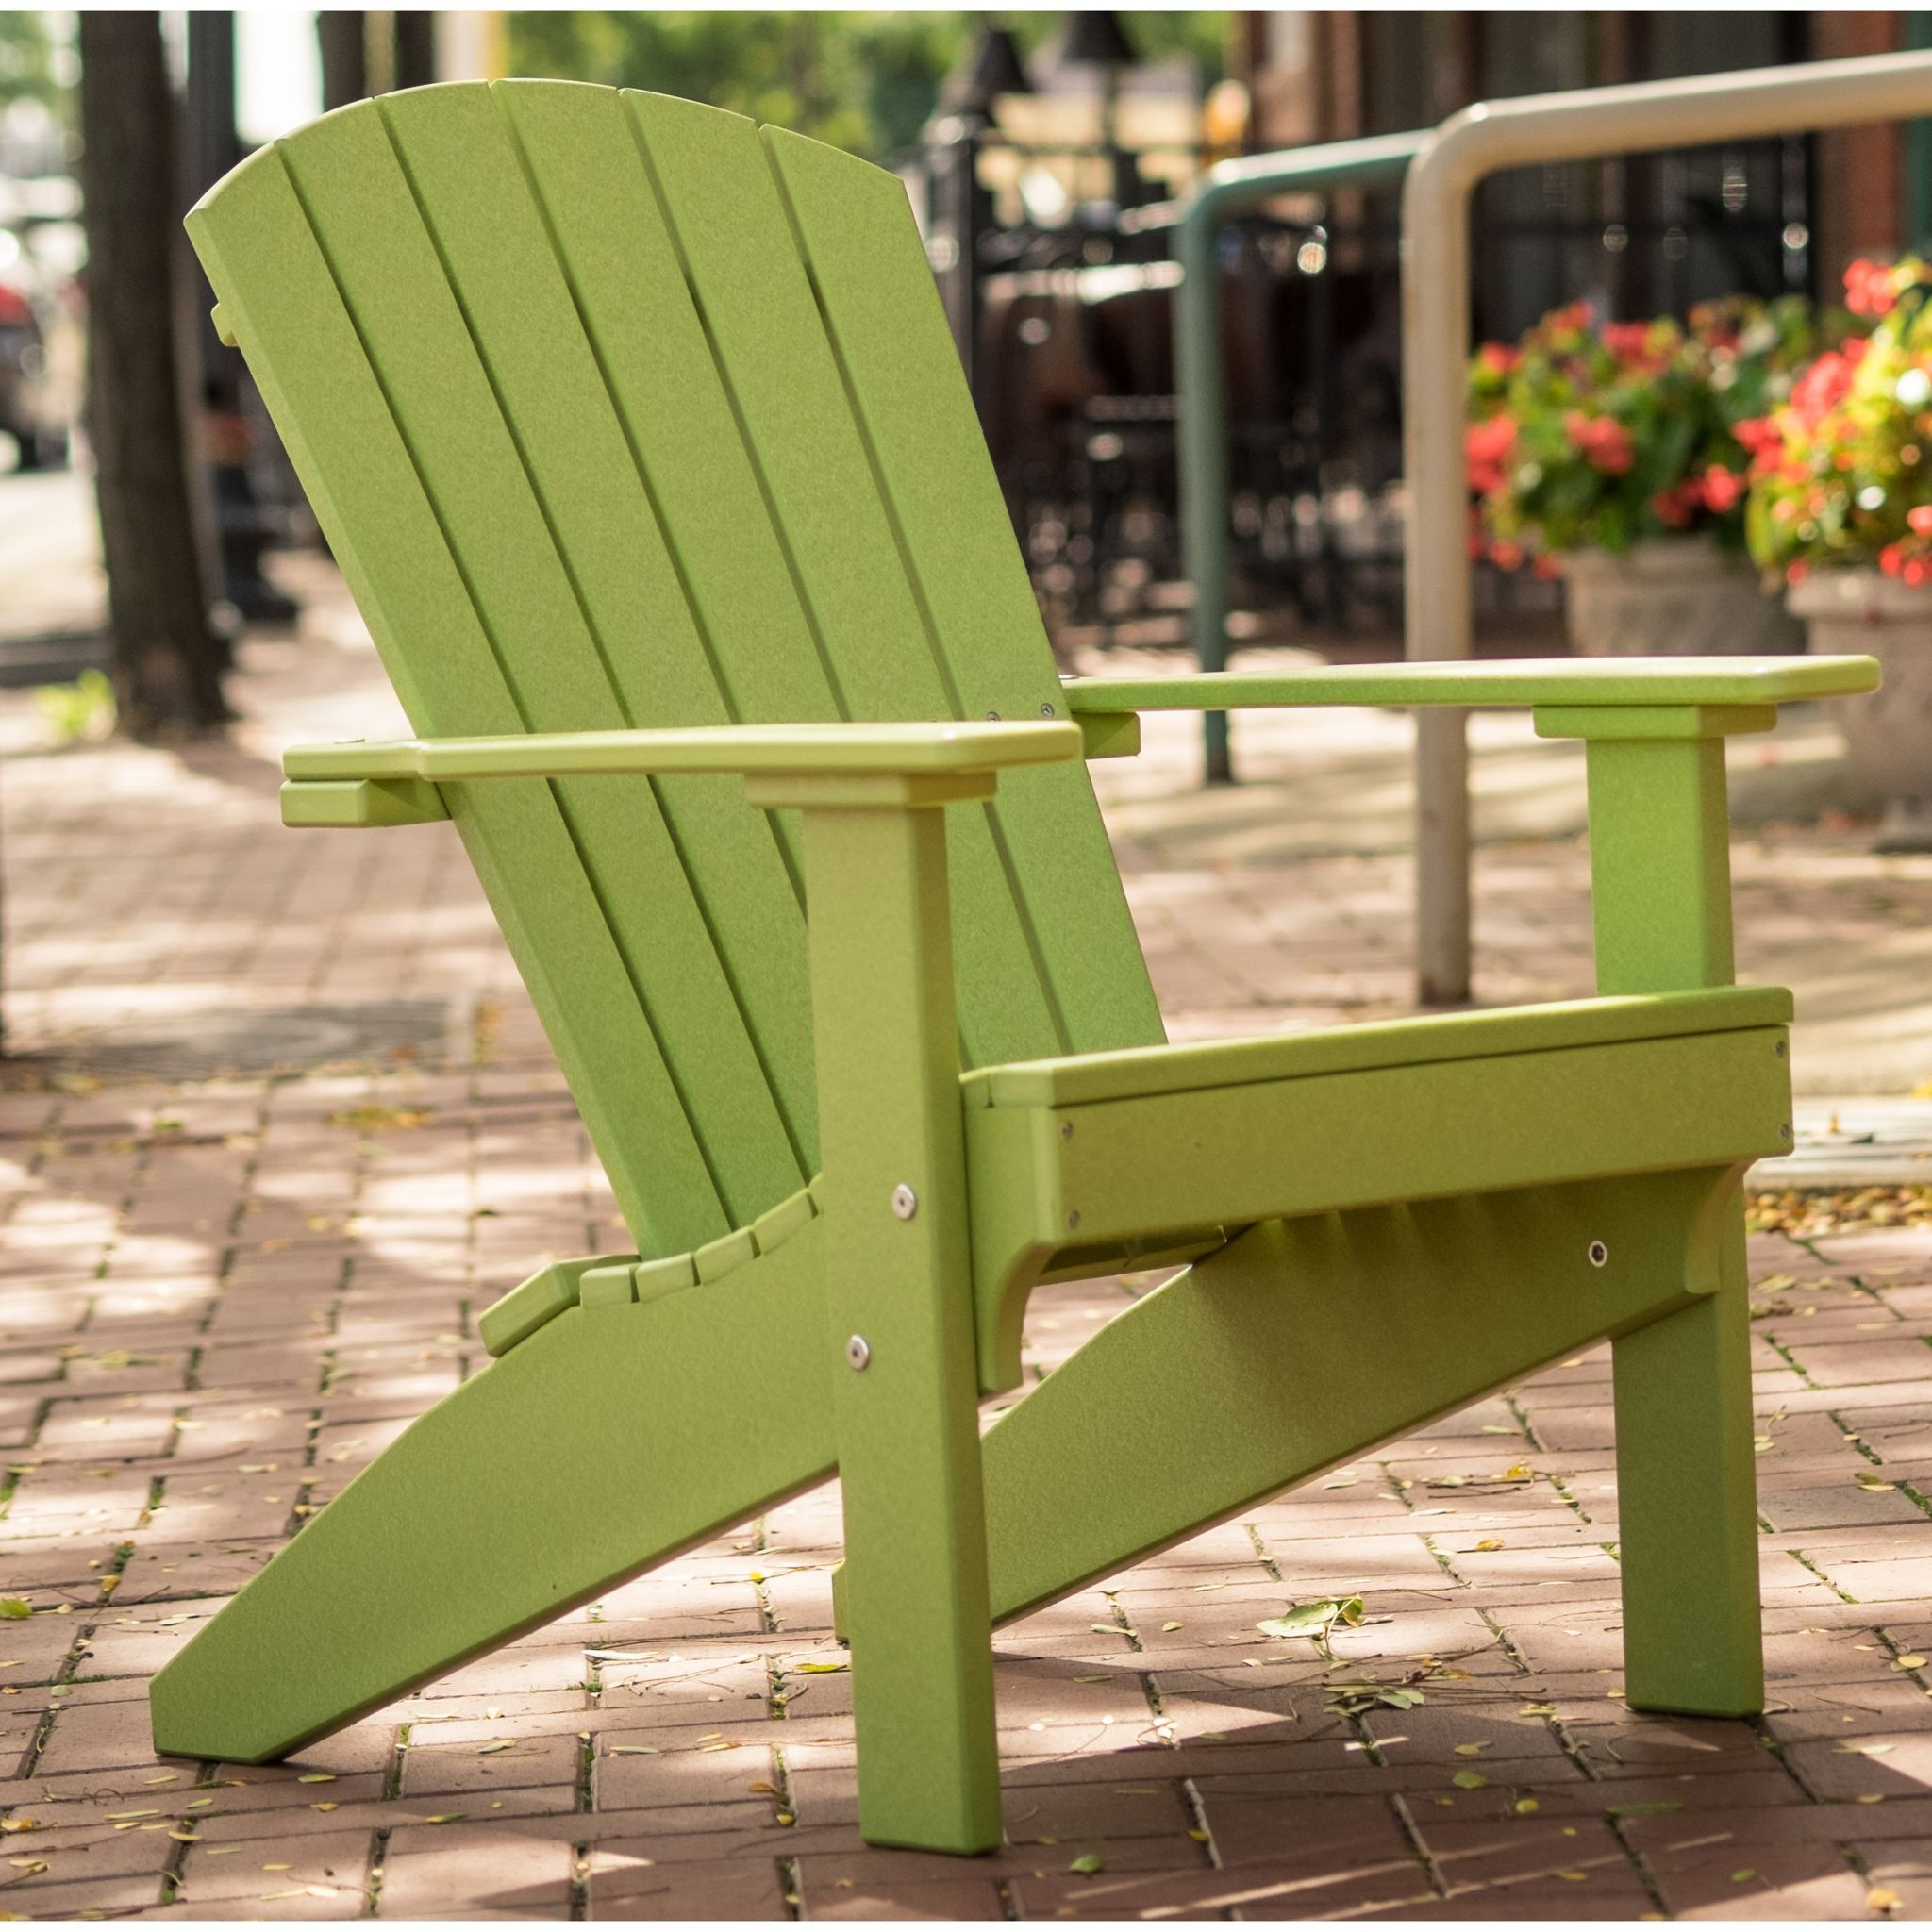 Luxcraft recycled plastic lakeside adirondack chair chairrecicle